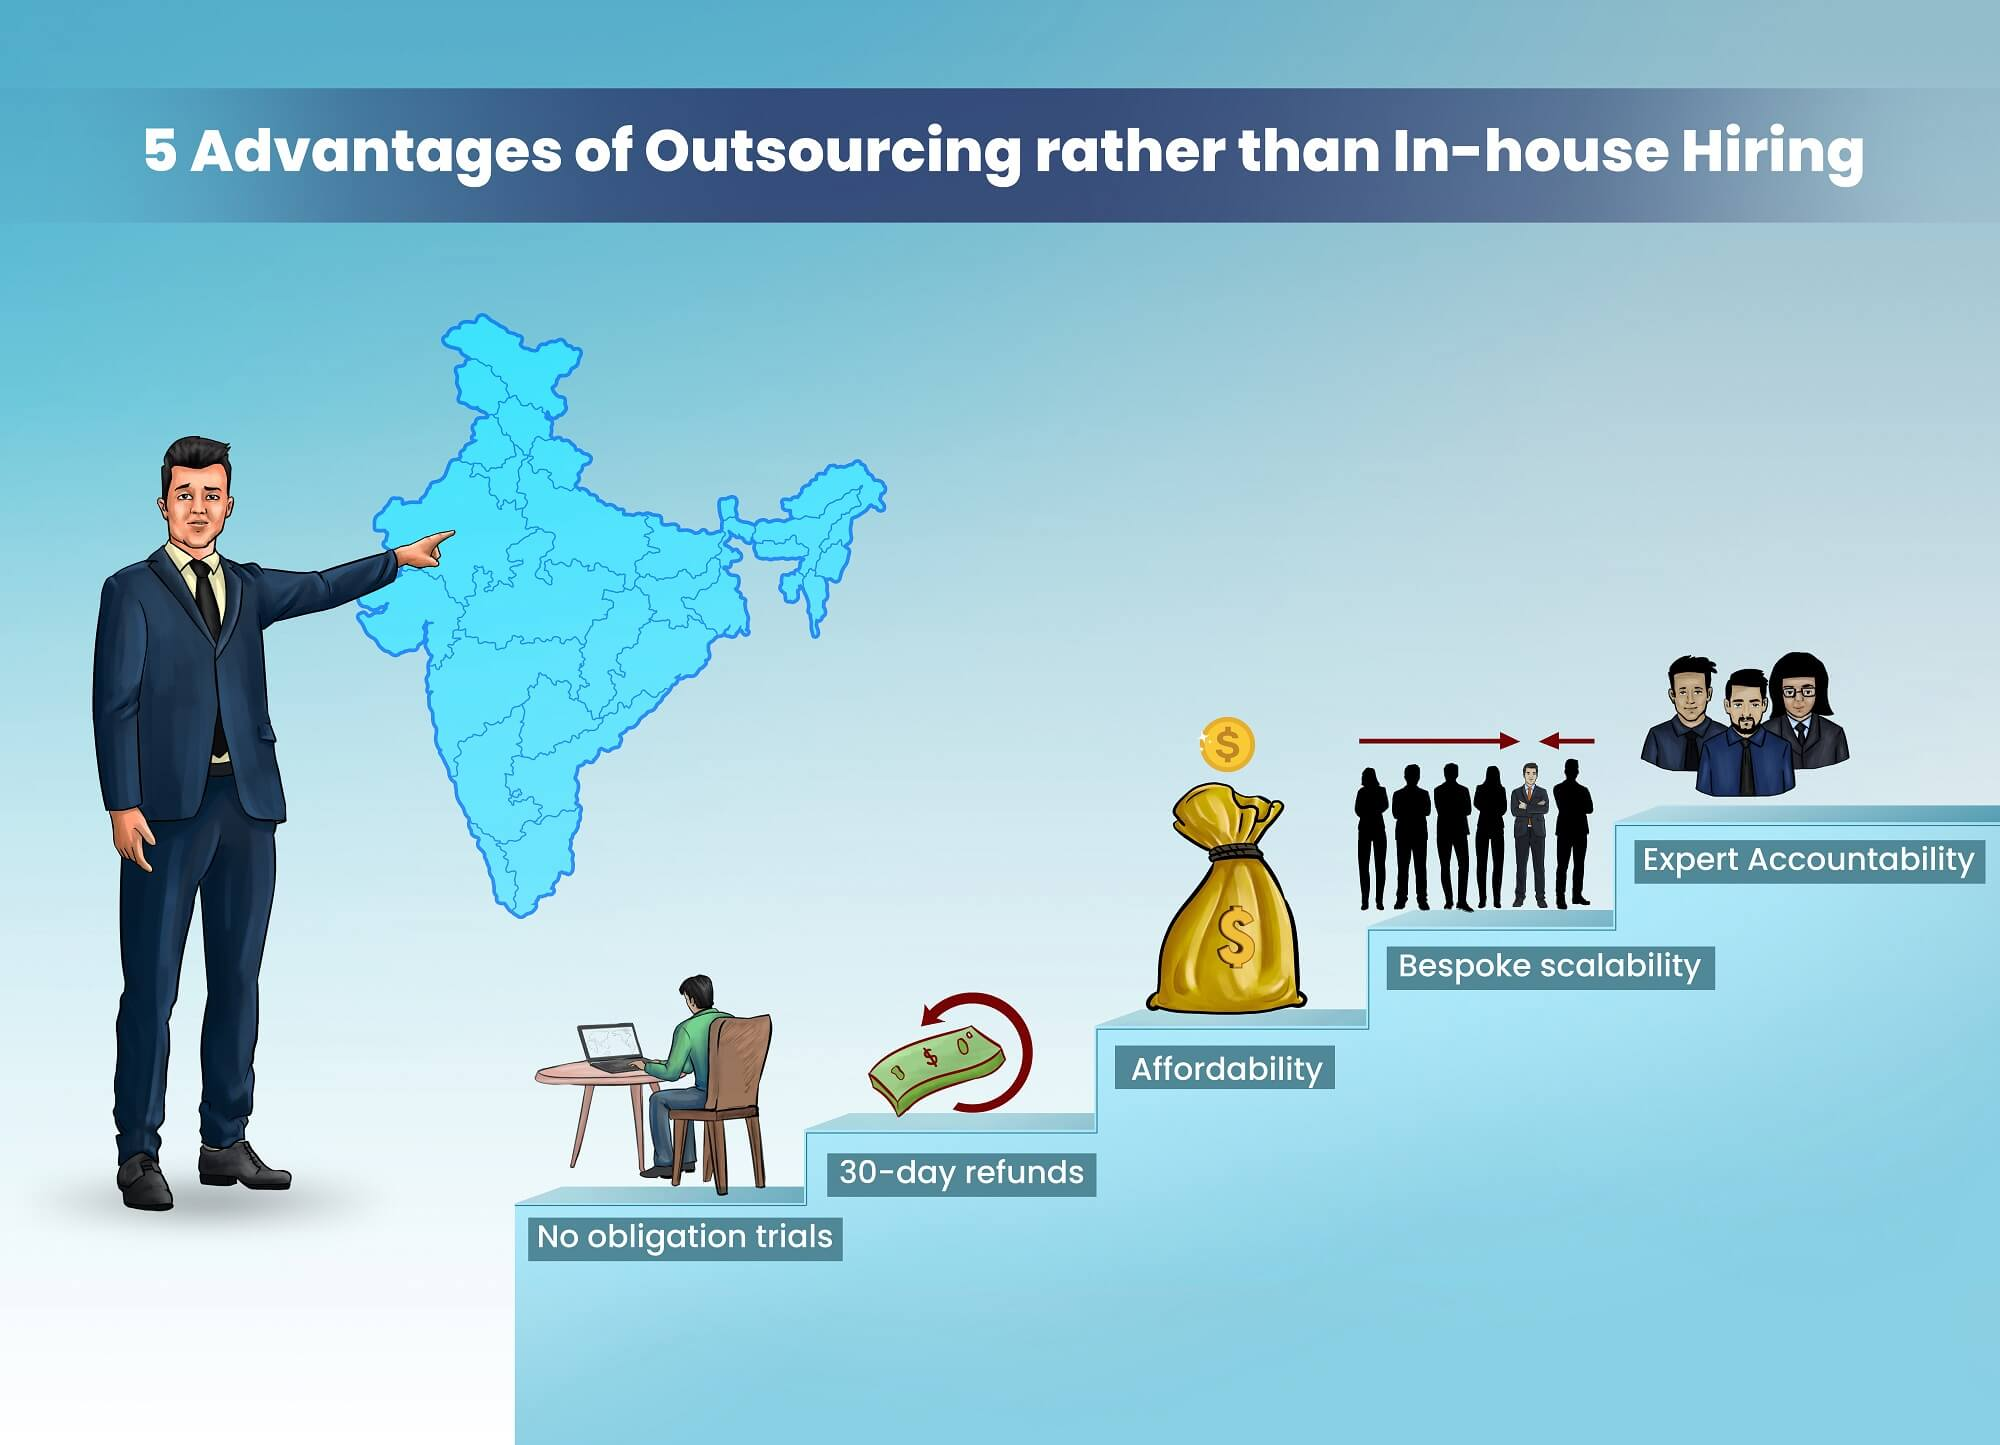 5 Advantages of Outsourcing rather than In-house Hiring